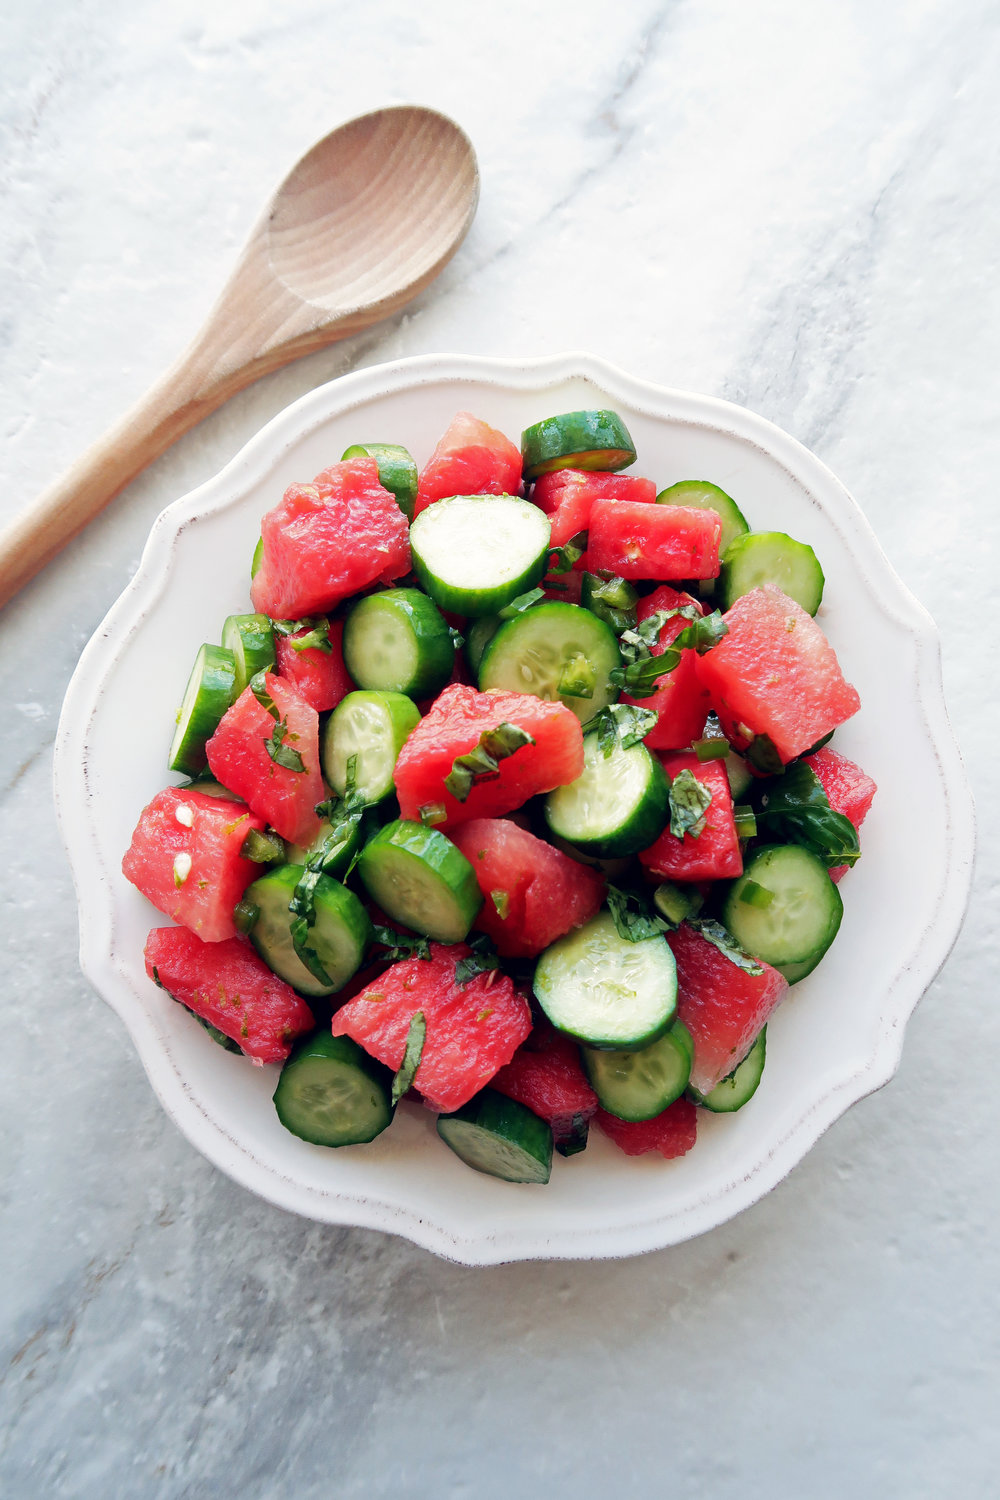 Watermelon Cucumber Jalapeno Salad on a white plate with a wooden spoon on the side of the plate.